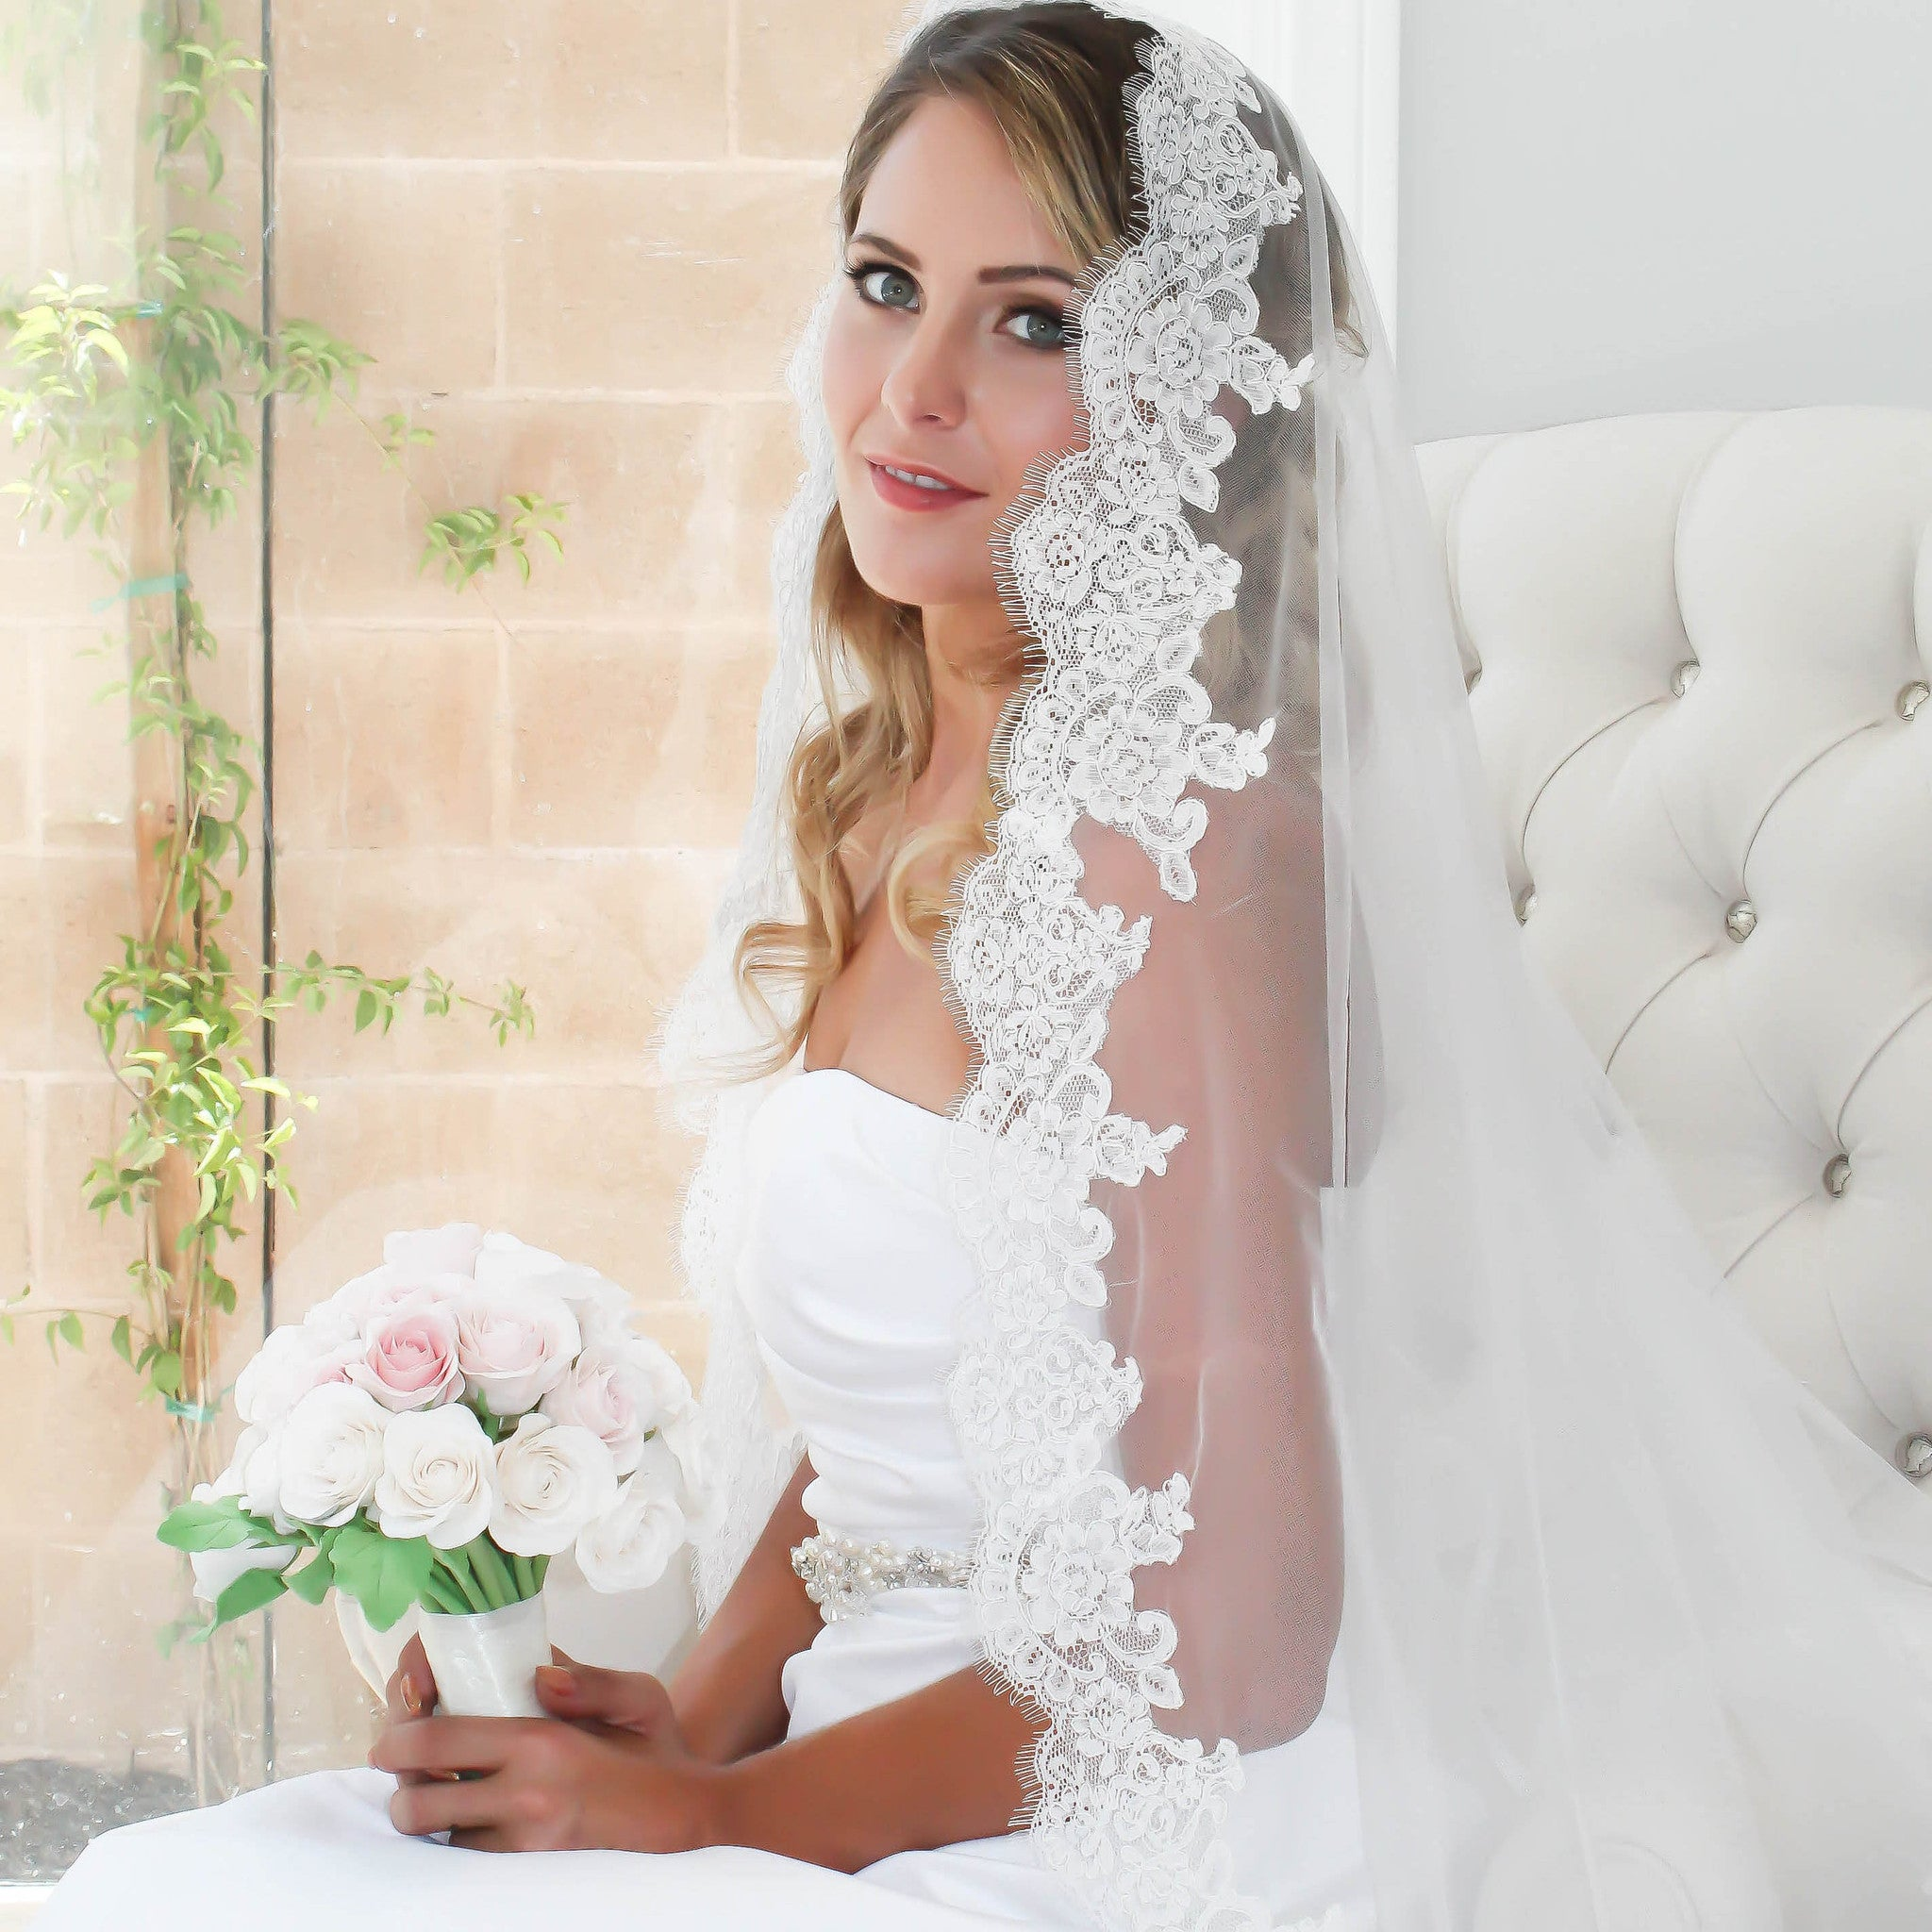 Wedding Veil Hand-Sewn Lace and Bridal Illusion Tulle | Bride Glamor